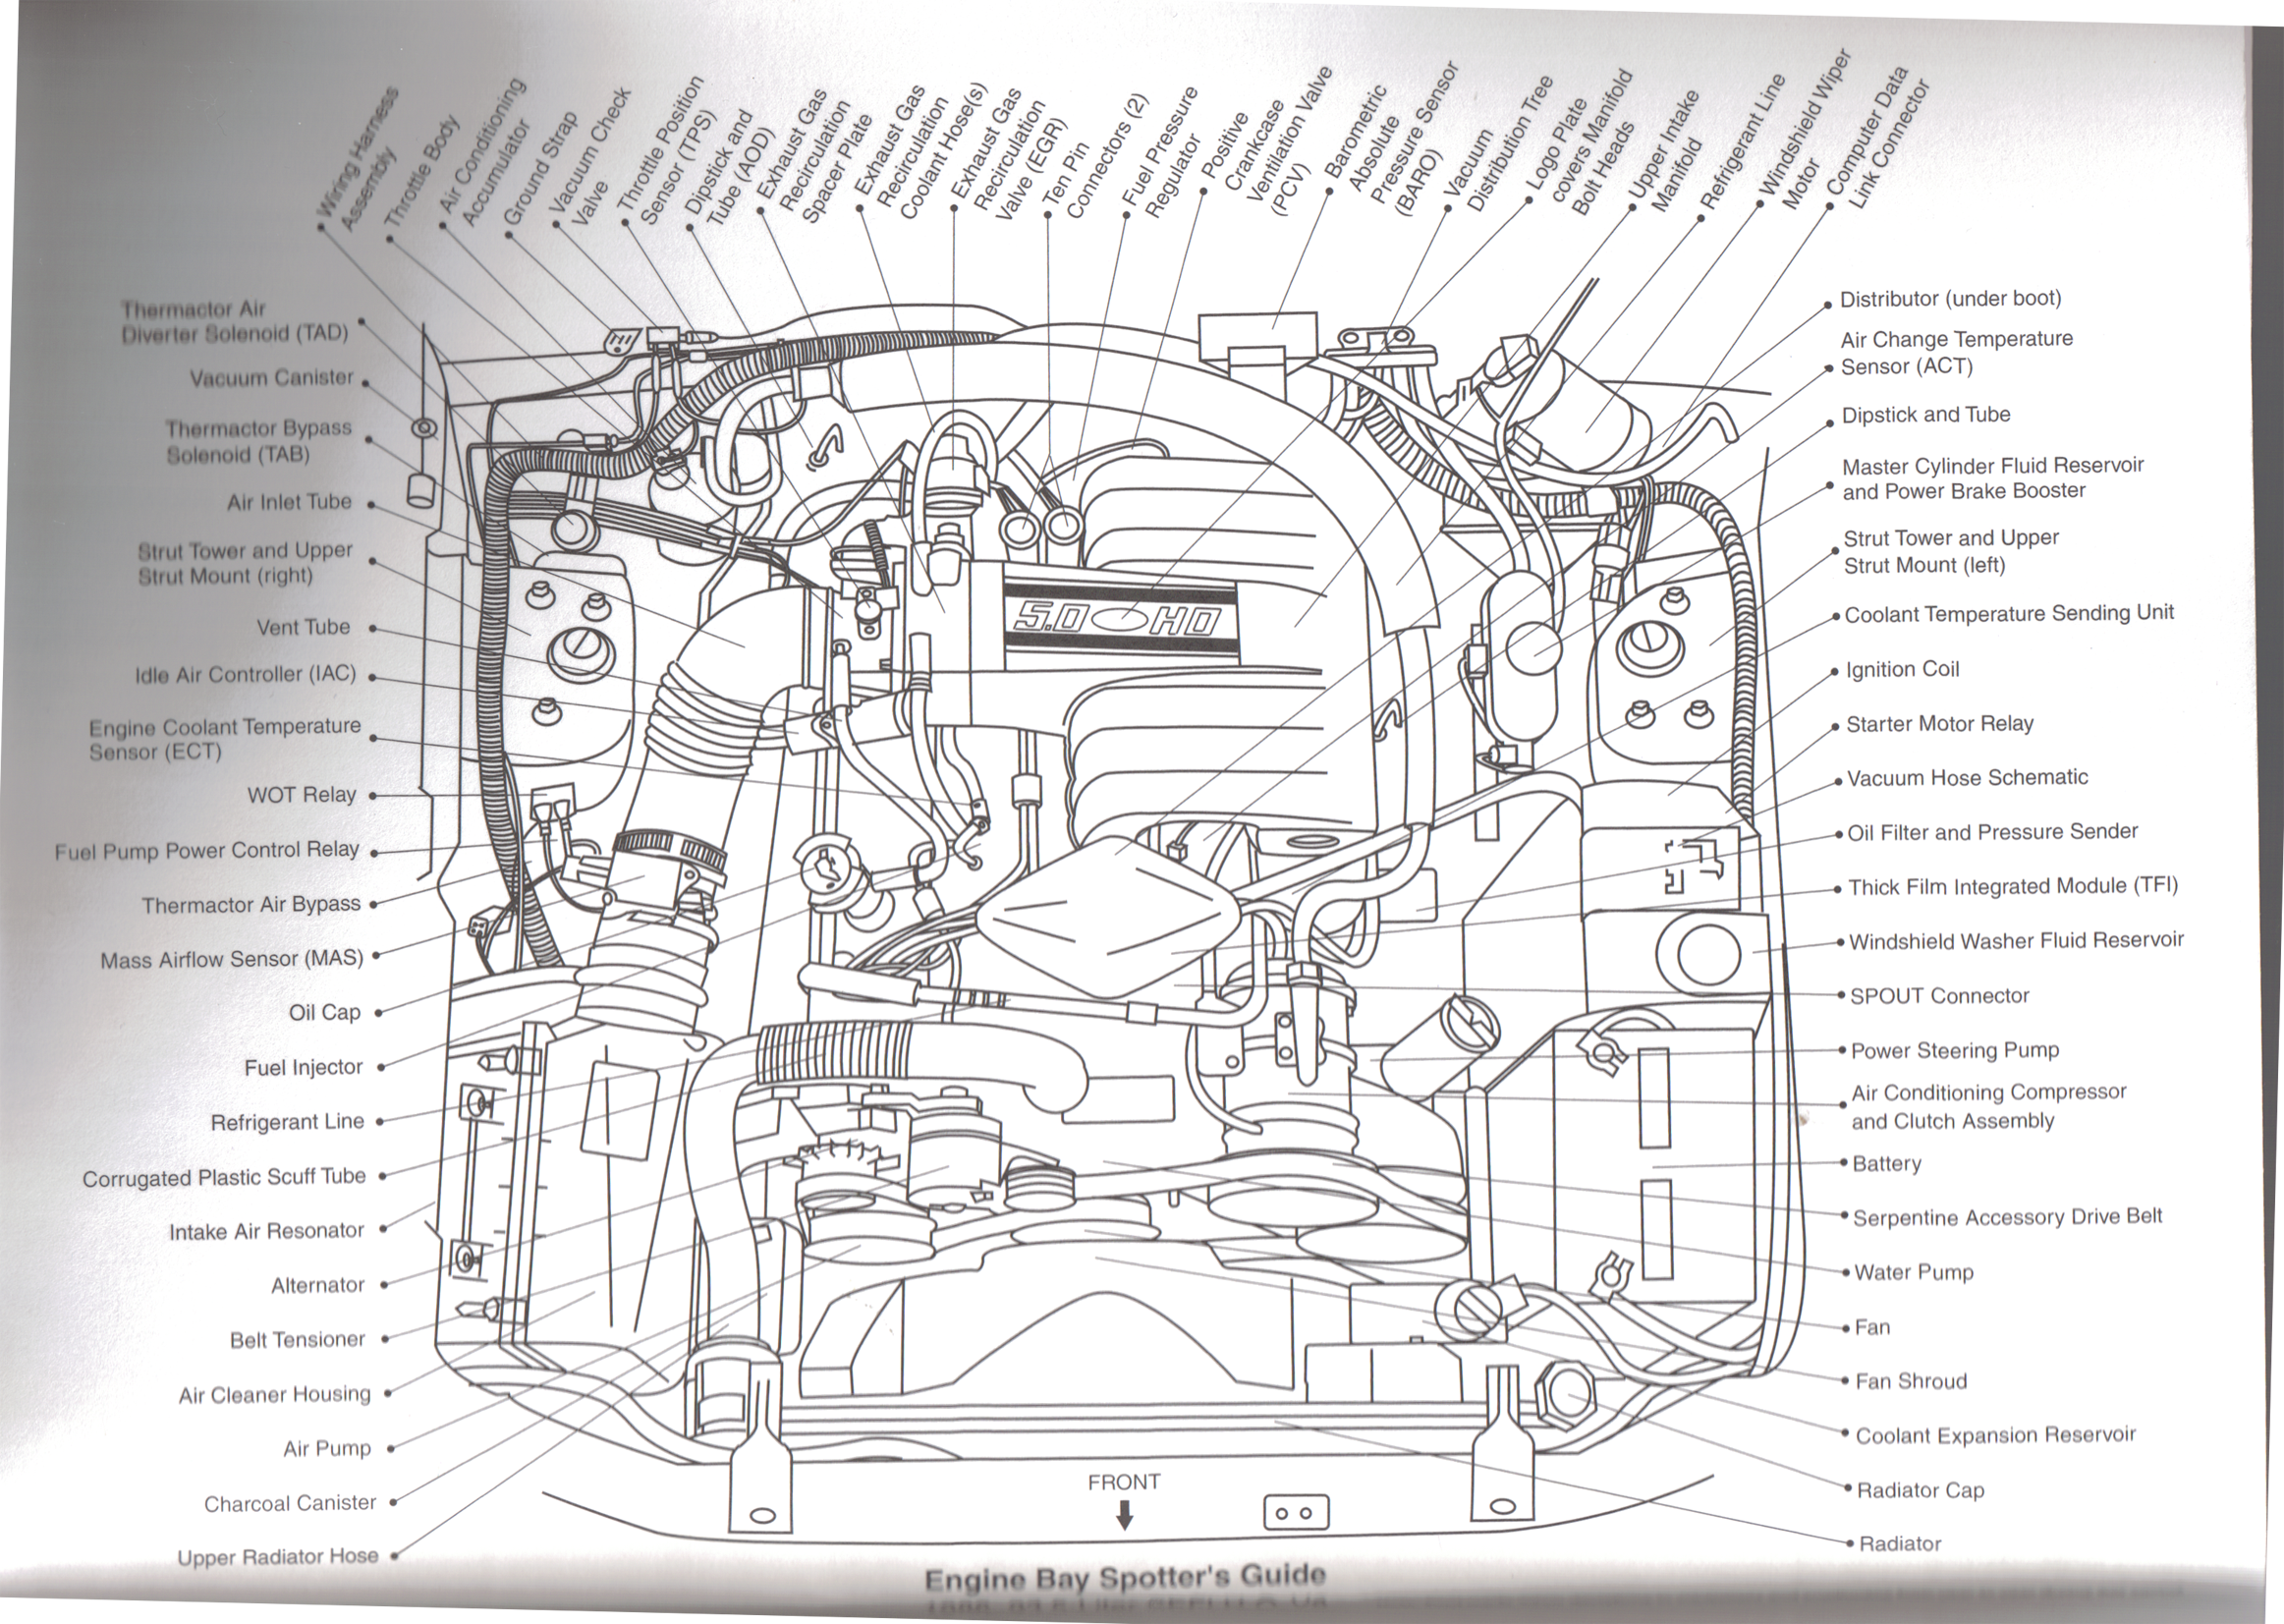 1987 1993 foxbody 5.0 sefi v8 engine part diagram everything you need to know about 1979 1993 foxbody mustangs New Edge Ford Mustang Wire Harness Kit at webbmarketing.co